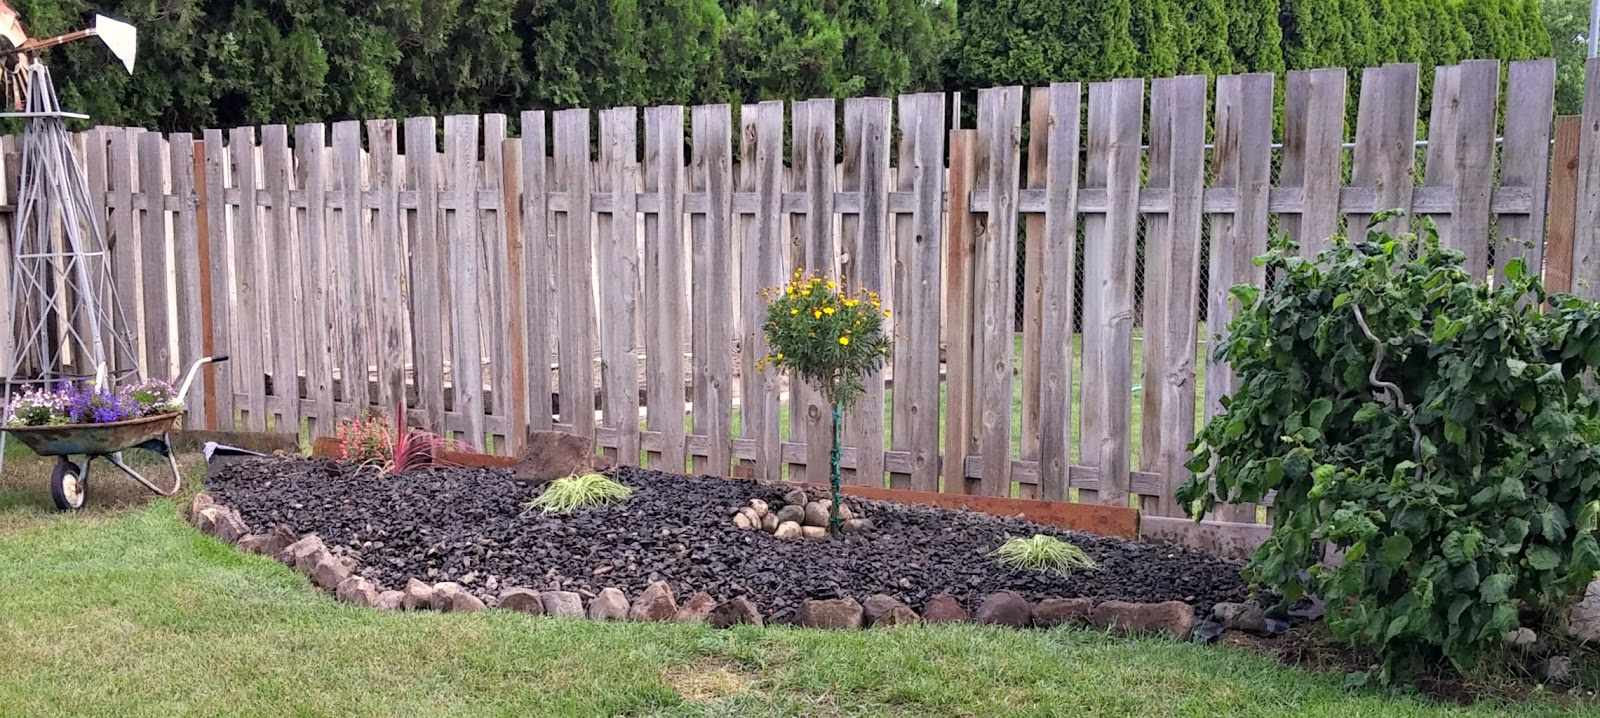 ... The Fence Will Get Moved But It Will Have To Wait Until I Fix Up My  Fence First Otherwise My Neighbor Will End Up With Some Of My Rocks In Her  Yard!